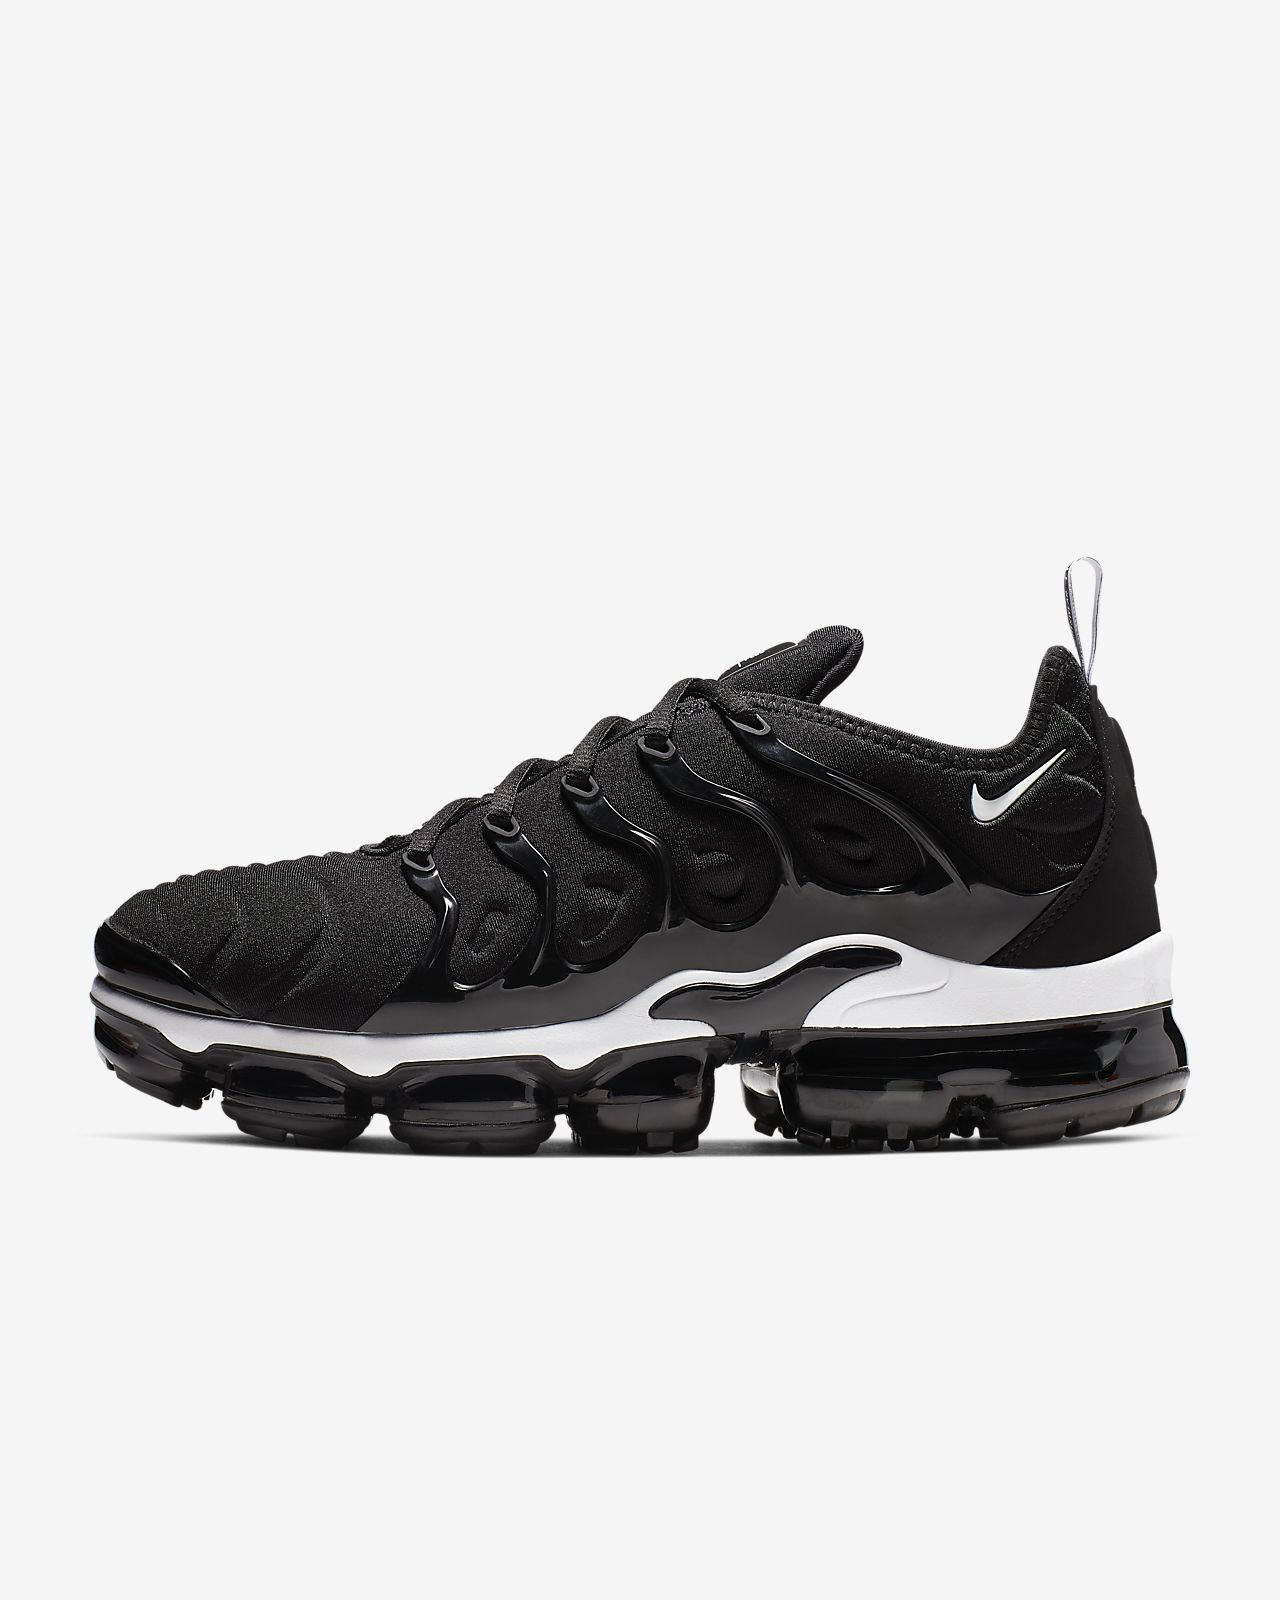 1f096e8a3c1 Scarpa Nike Air VaporMax Plus - Uomo. Nike.com IT